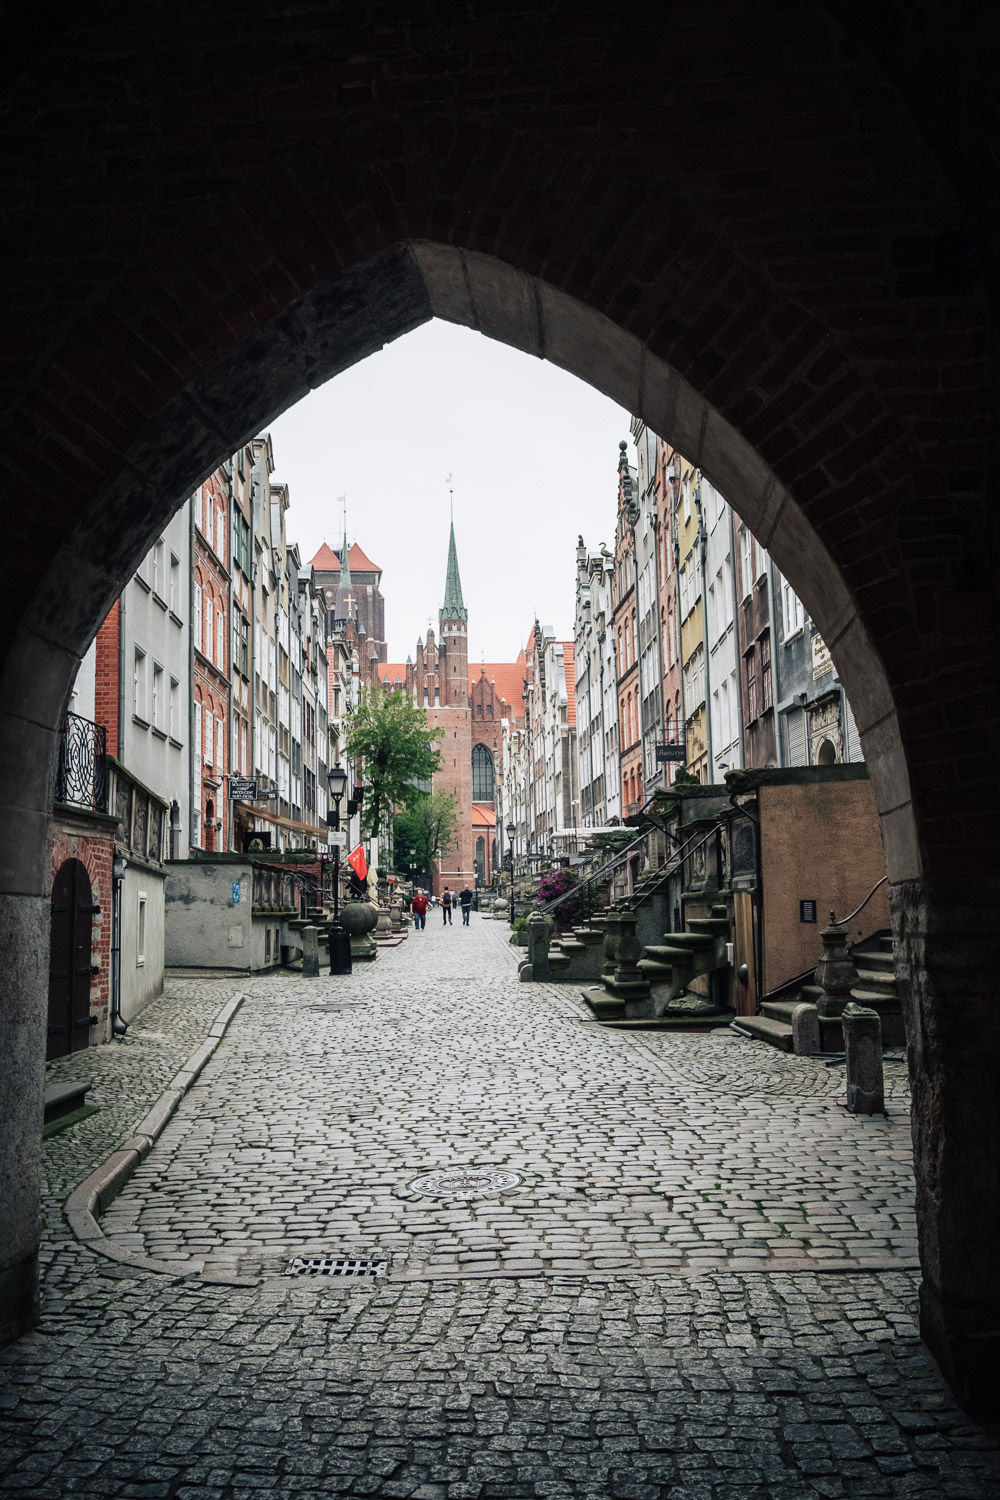 Ulica Mariacka (Amber Street). Gdansk is know around the world as the capital of amber.